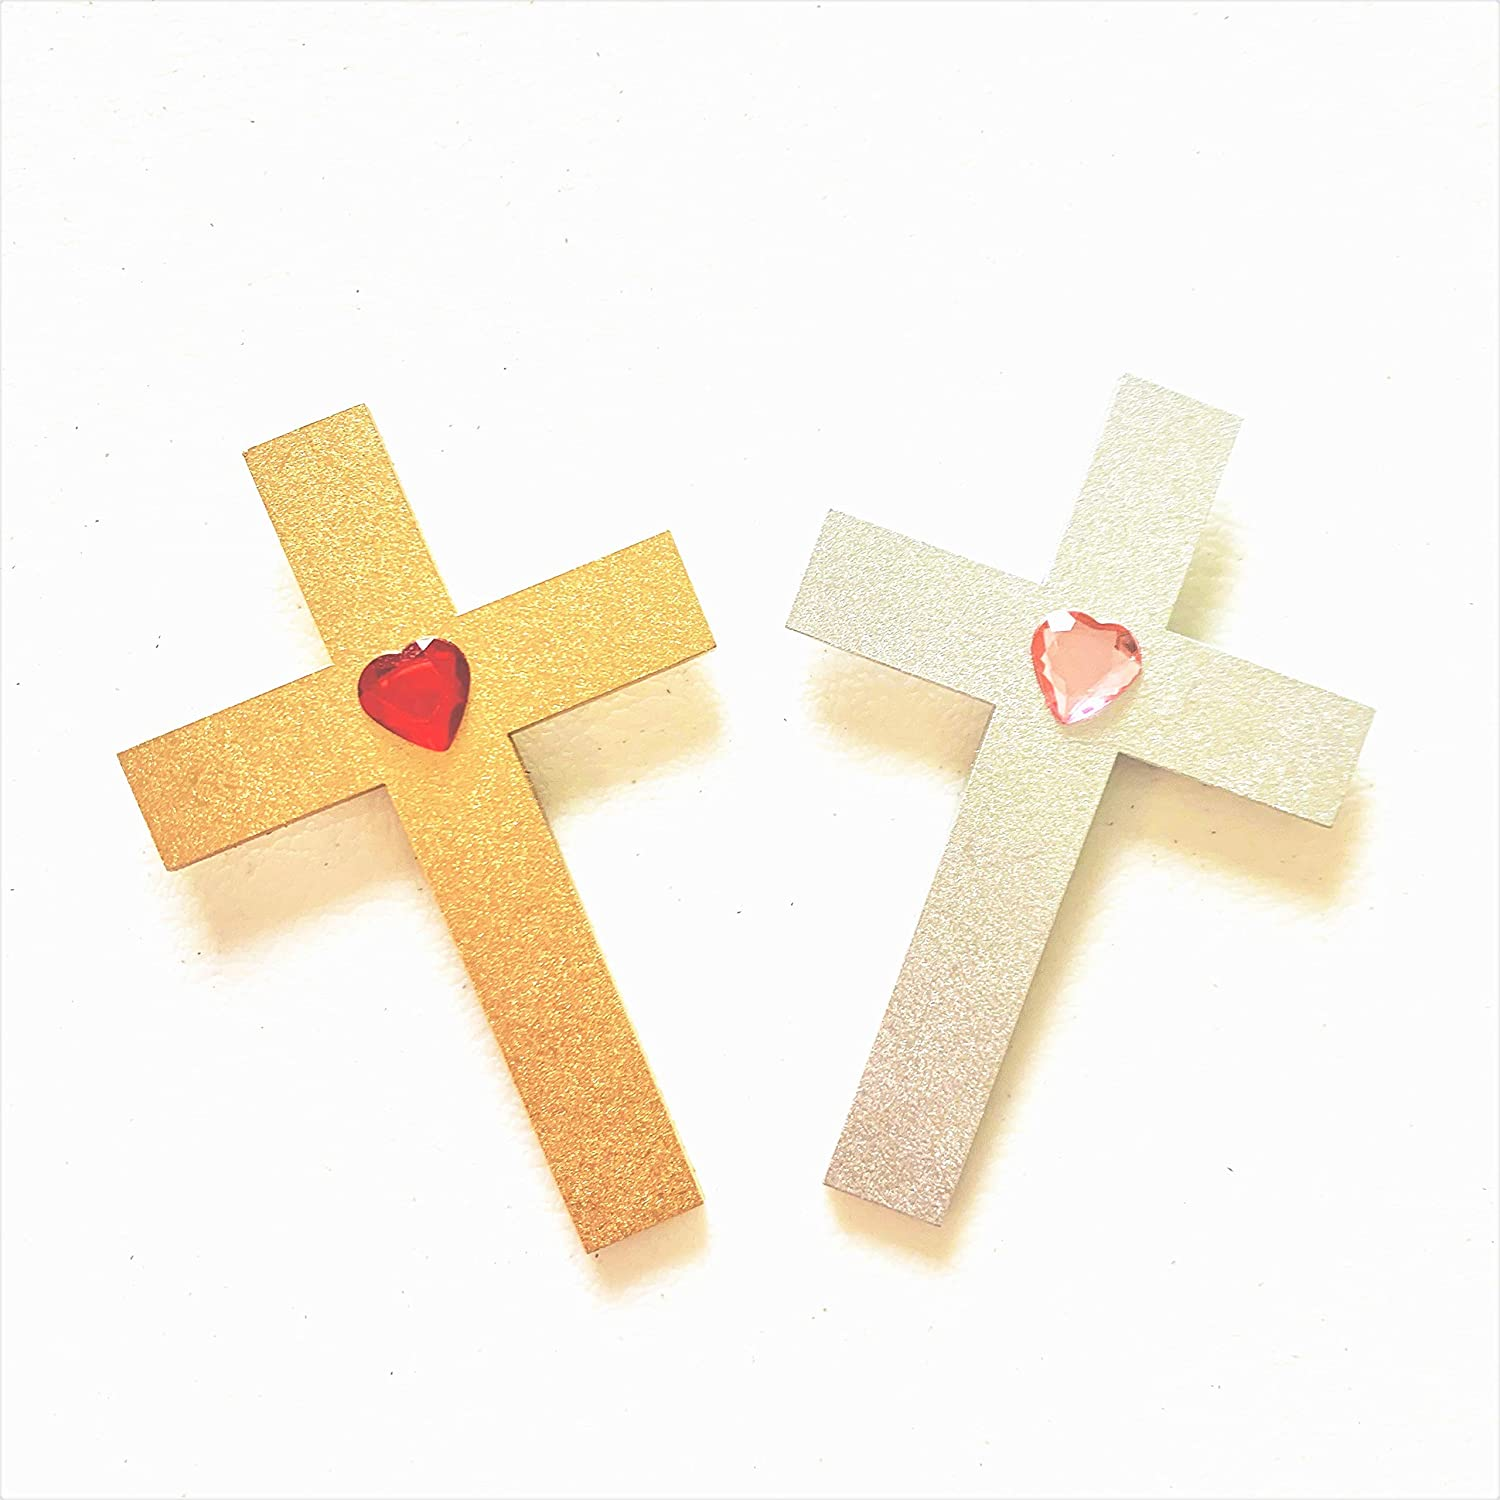 Wooden Cross Magnets | 2 PCS | Beautiful Handmade|Fridge Refrigerator Car Home Office Cabinets Whiteboards Lockers Classroom Church Decor Gold Silver Glittery Shimmer Favors Christian Family|3.5x2.5in